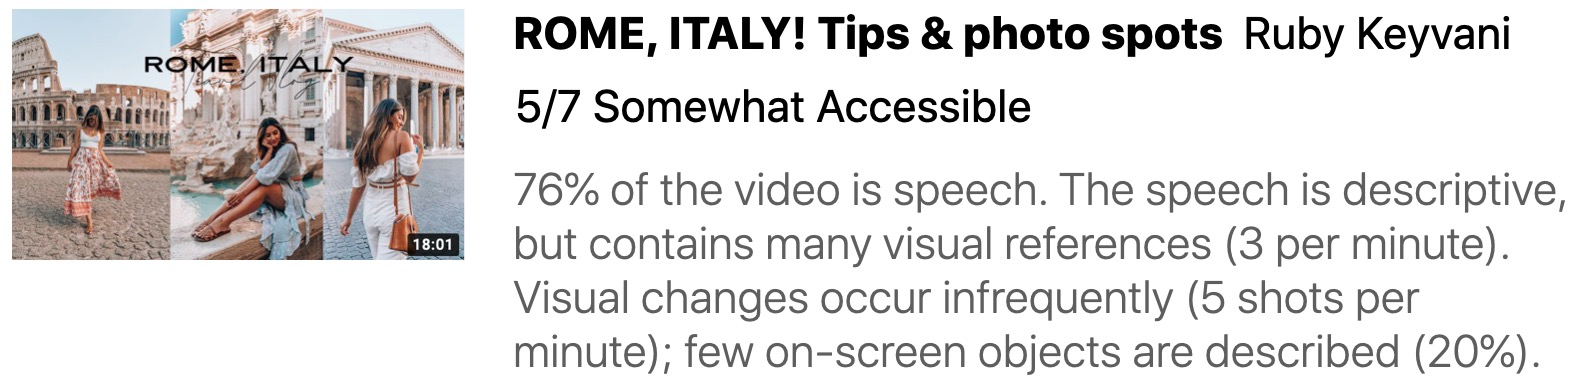 A YouTube search result augmented with accessibility information. A thumbnail of the video shows a woman in Rome. The rest of the video information reads as follows: Rome, Italy! Tips & Photo Spots by Ruby Keyvani. 5/7 Somewhat Accessible. 76% of the video is speech. The speech is descriptive but contains many visual references (3 per minute). Visual changes occur infrequently (5 shots per minute); few on-screen objects are described (20%).